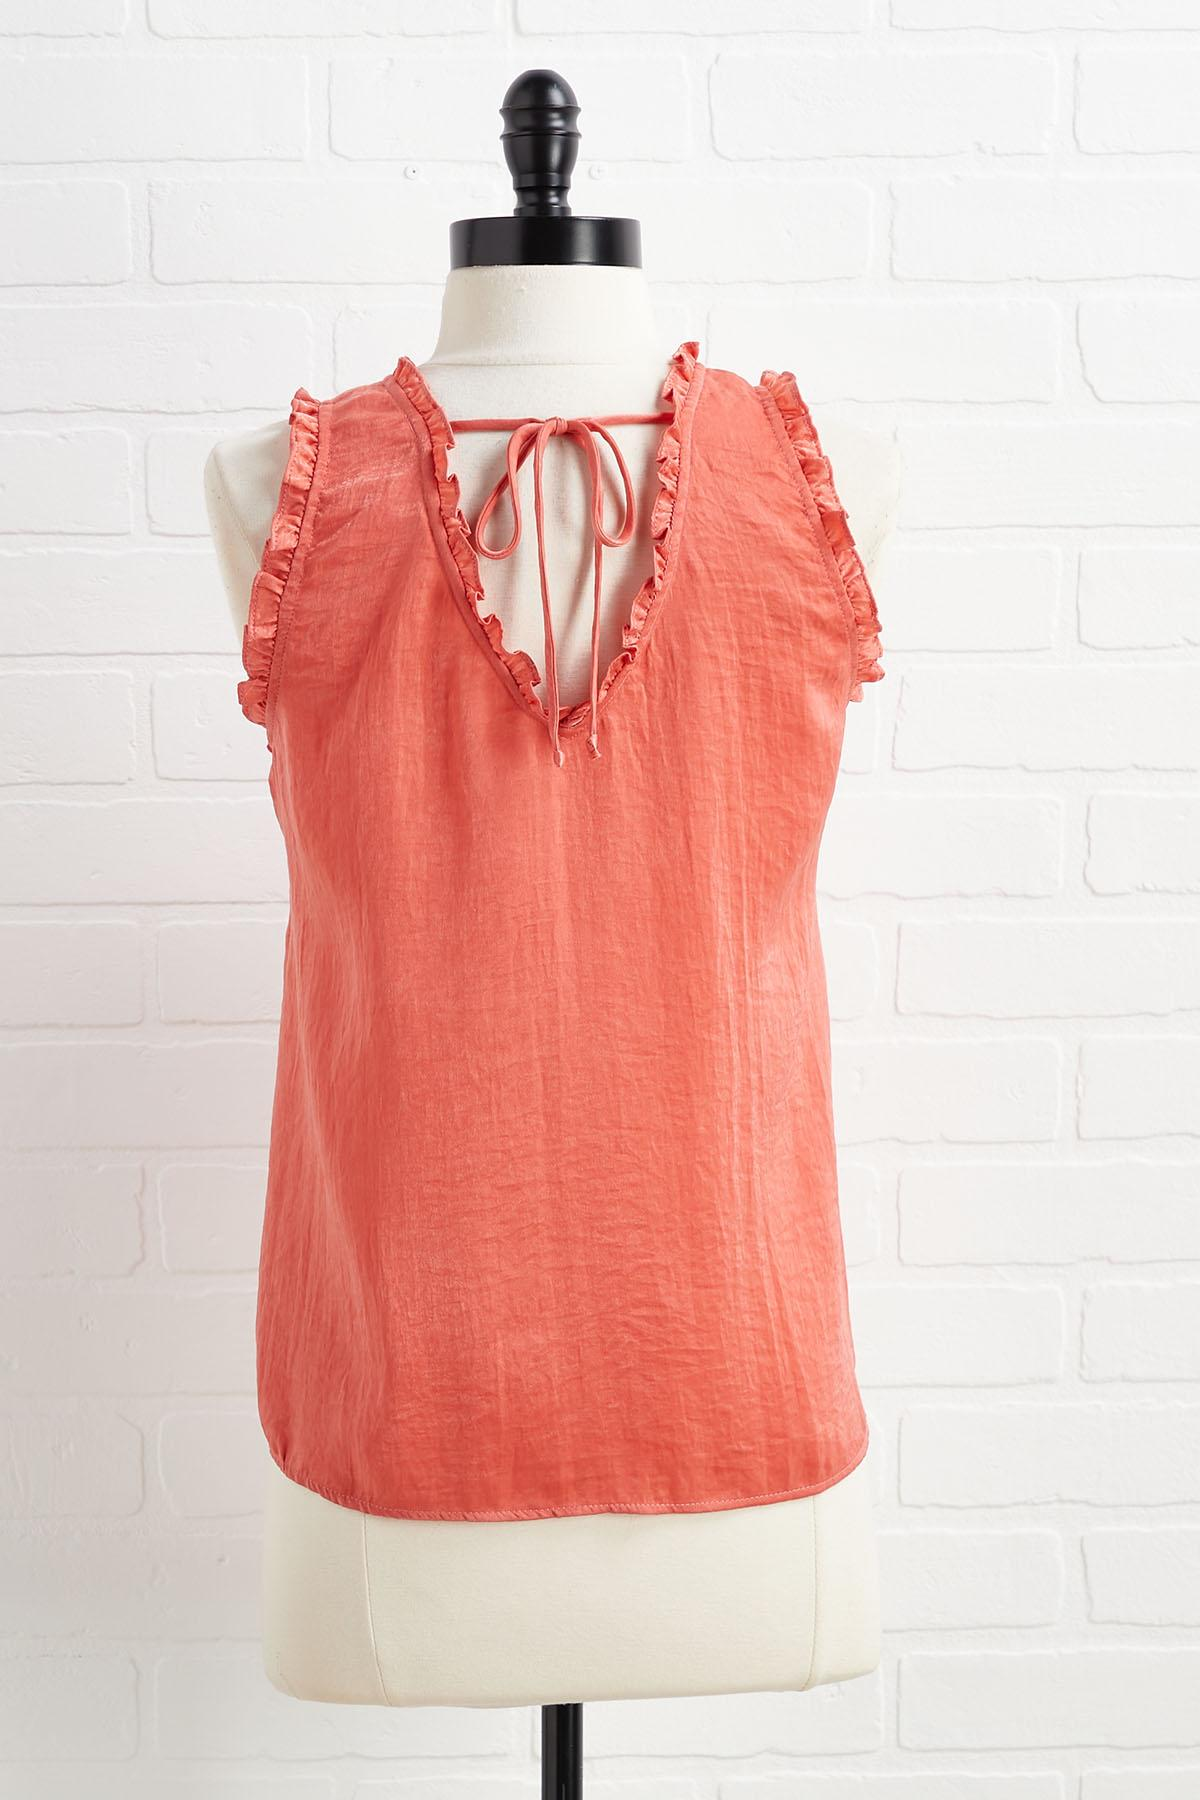 Sleek And Chic Top